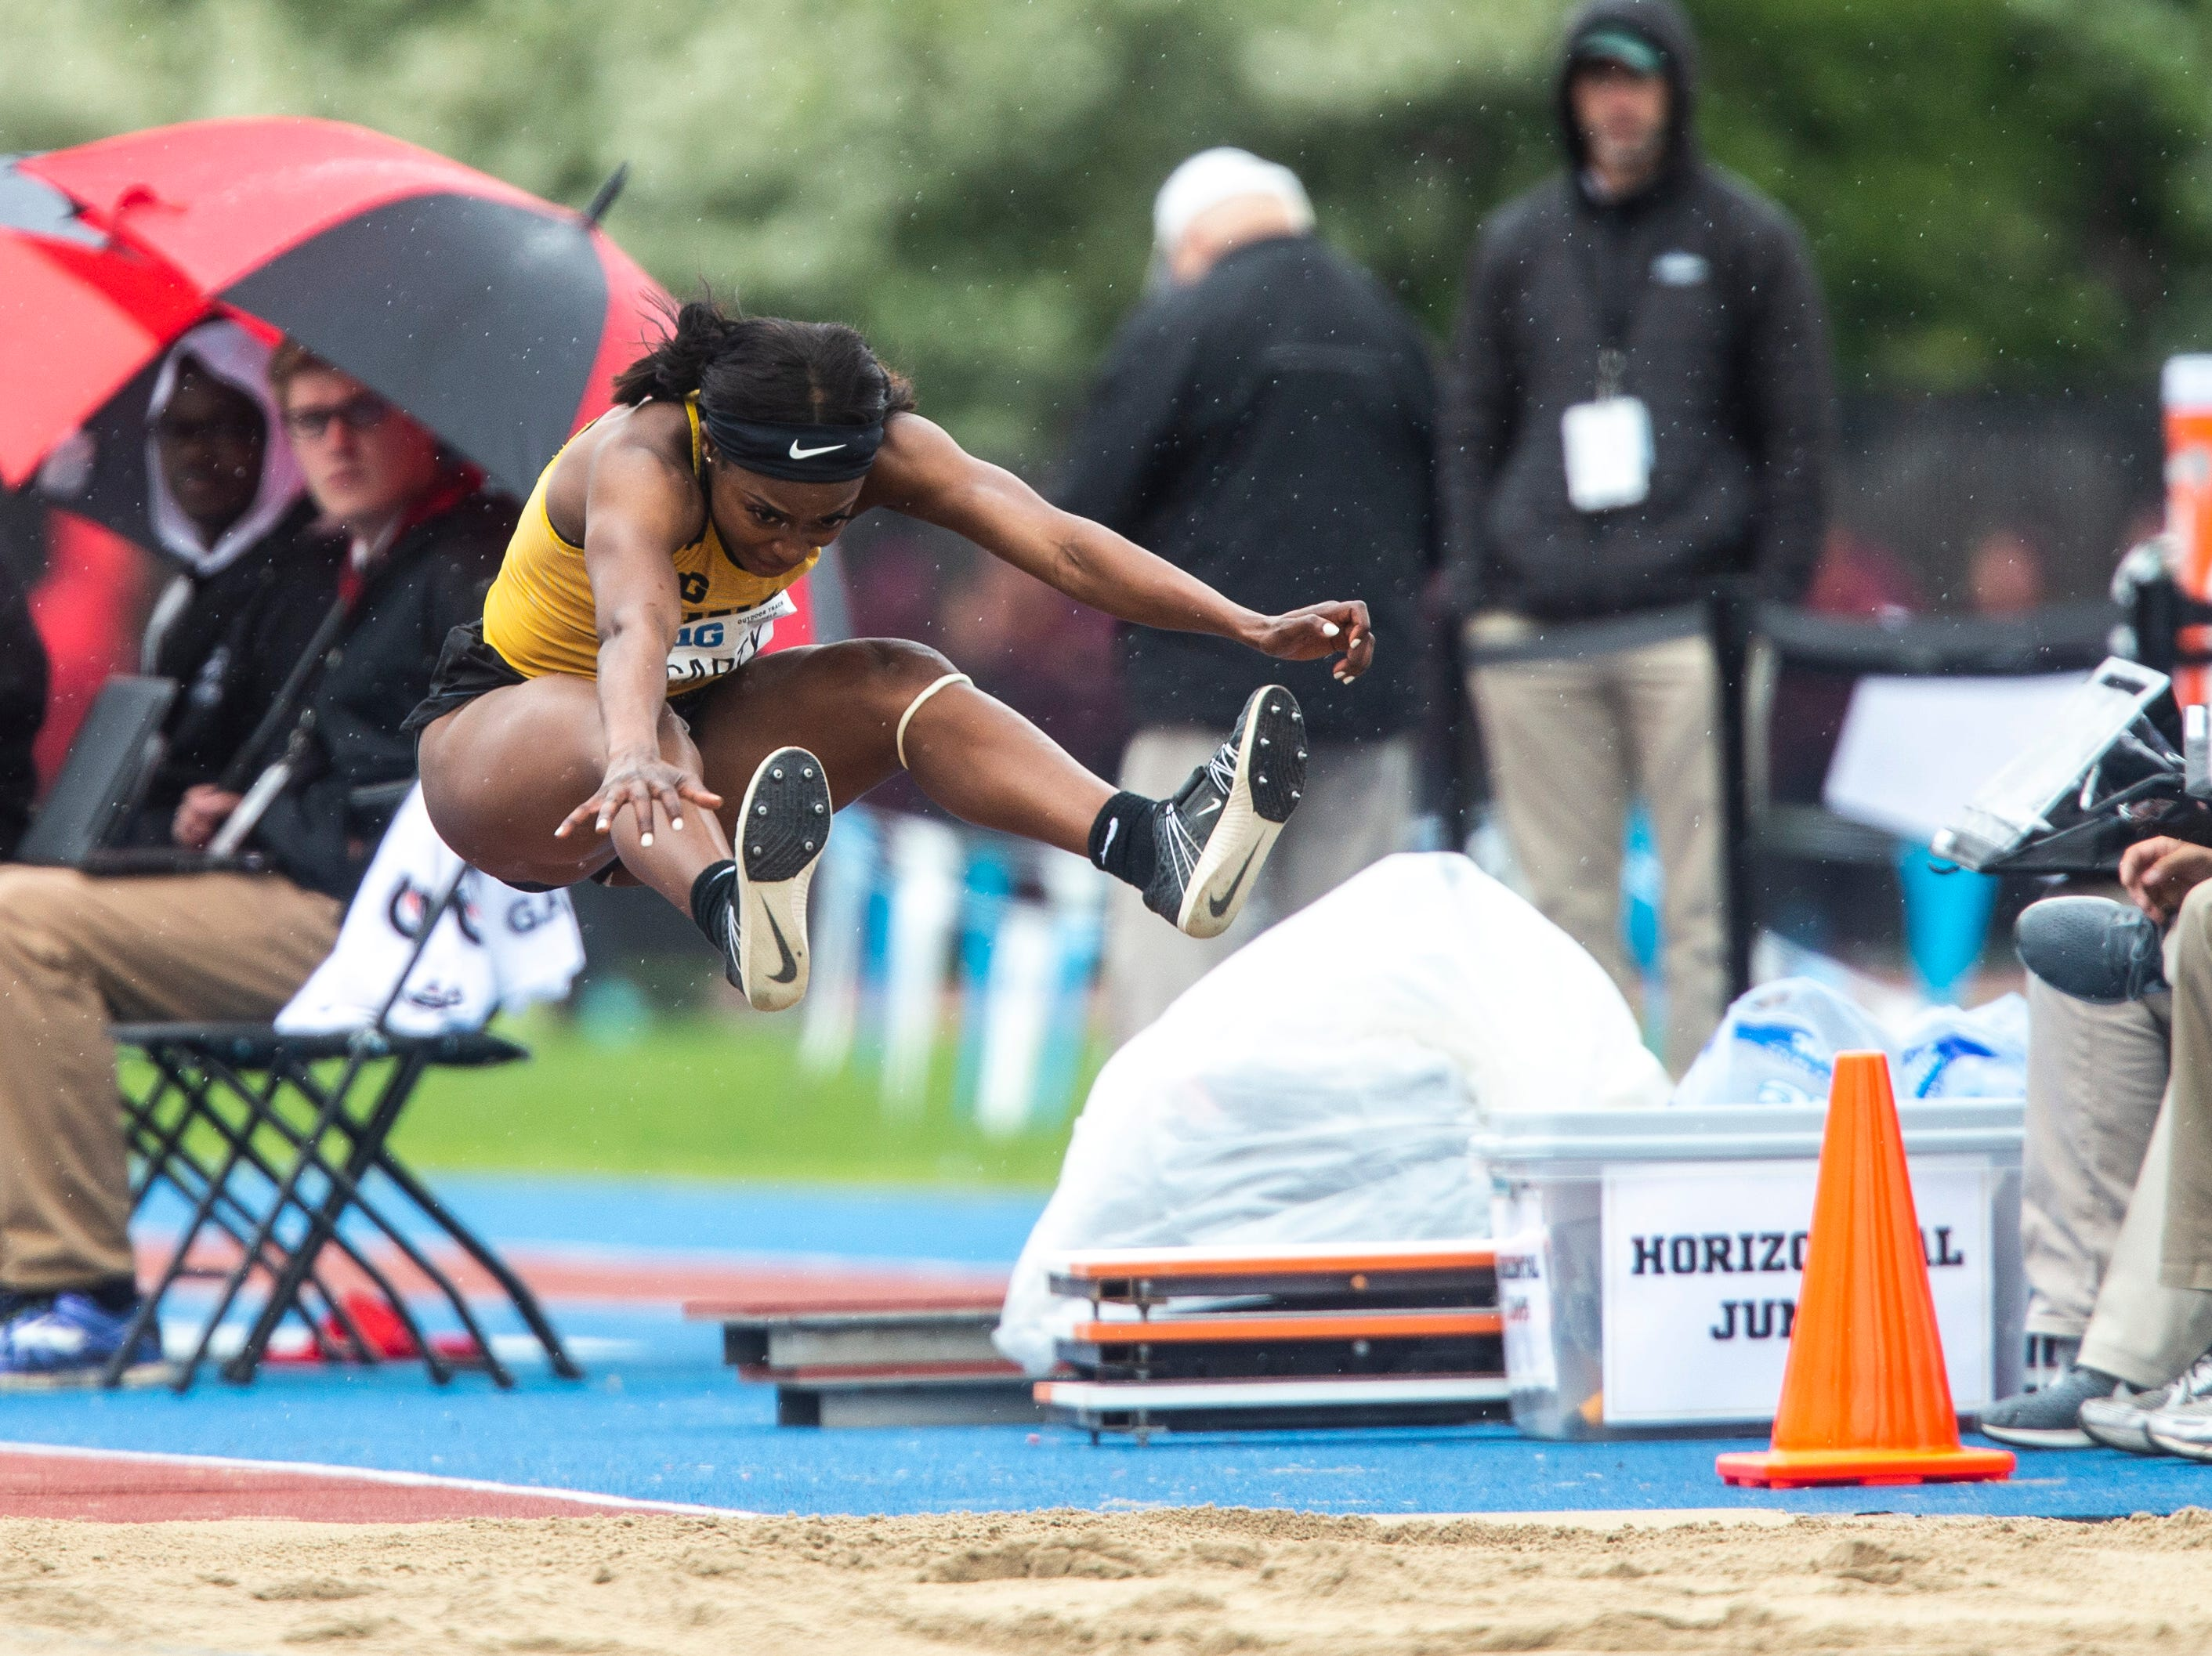 Iowa junior Amanda Carty competes in triple jump during the final day of Big Ten track and field outdoor championships, Sunday, May 12, 2019, at Francis X. Cretzmeyer Track on the University of Iowa campus in Iowa City, Iowa.